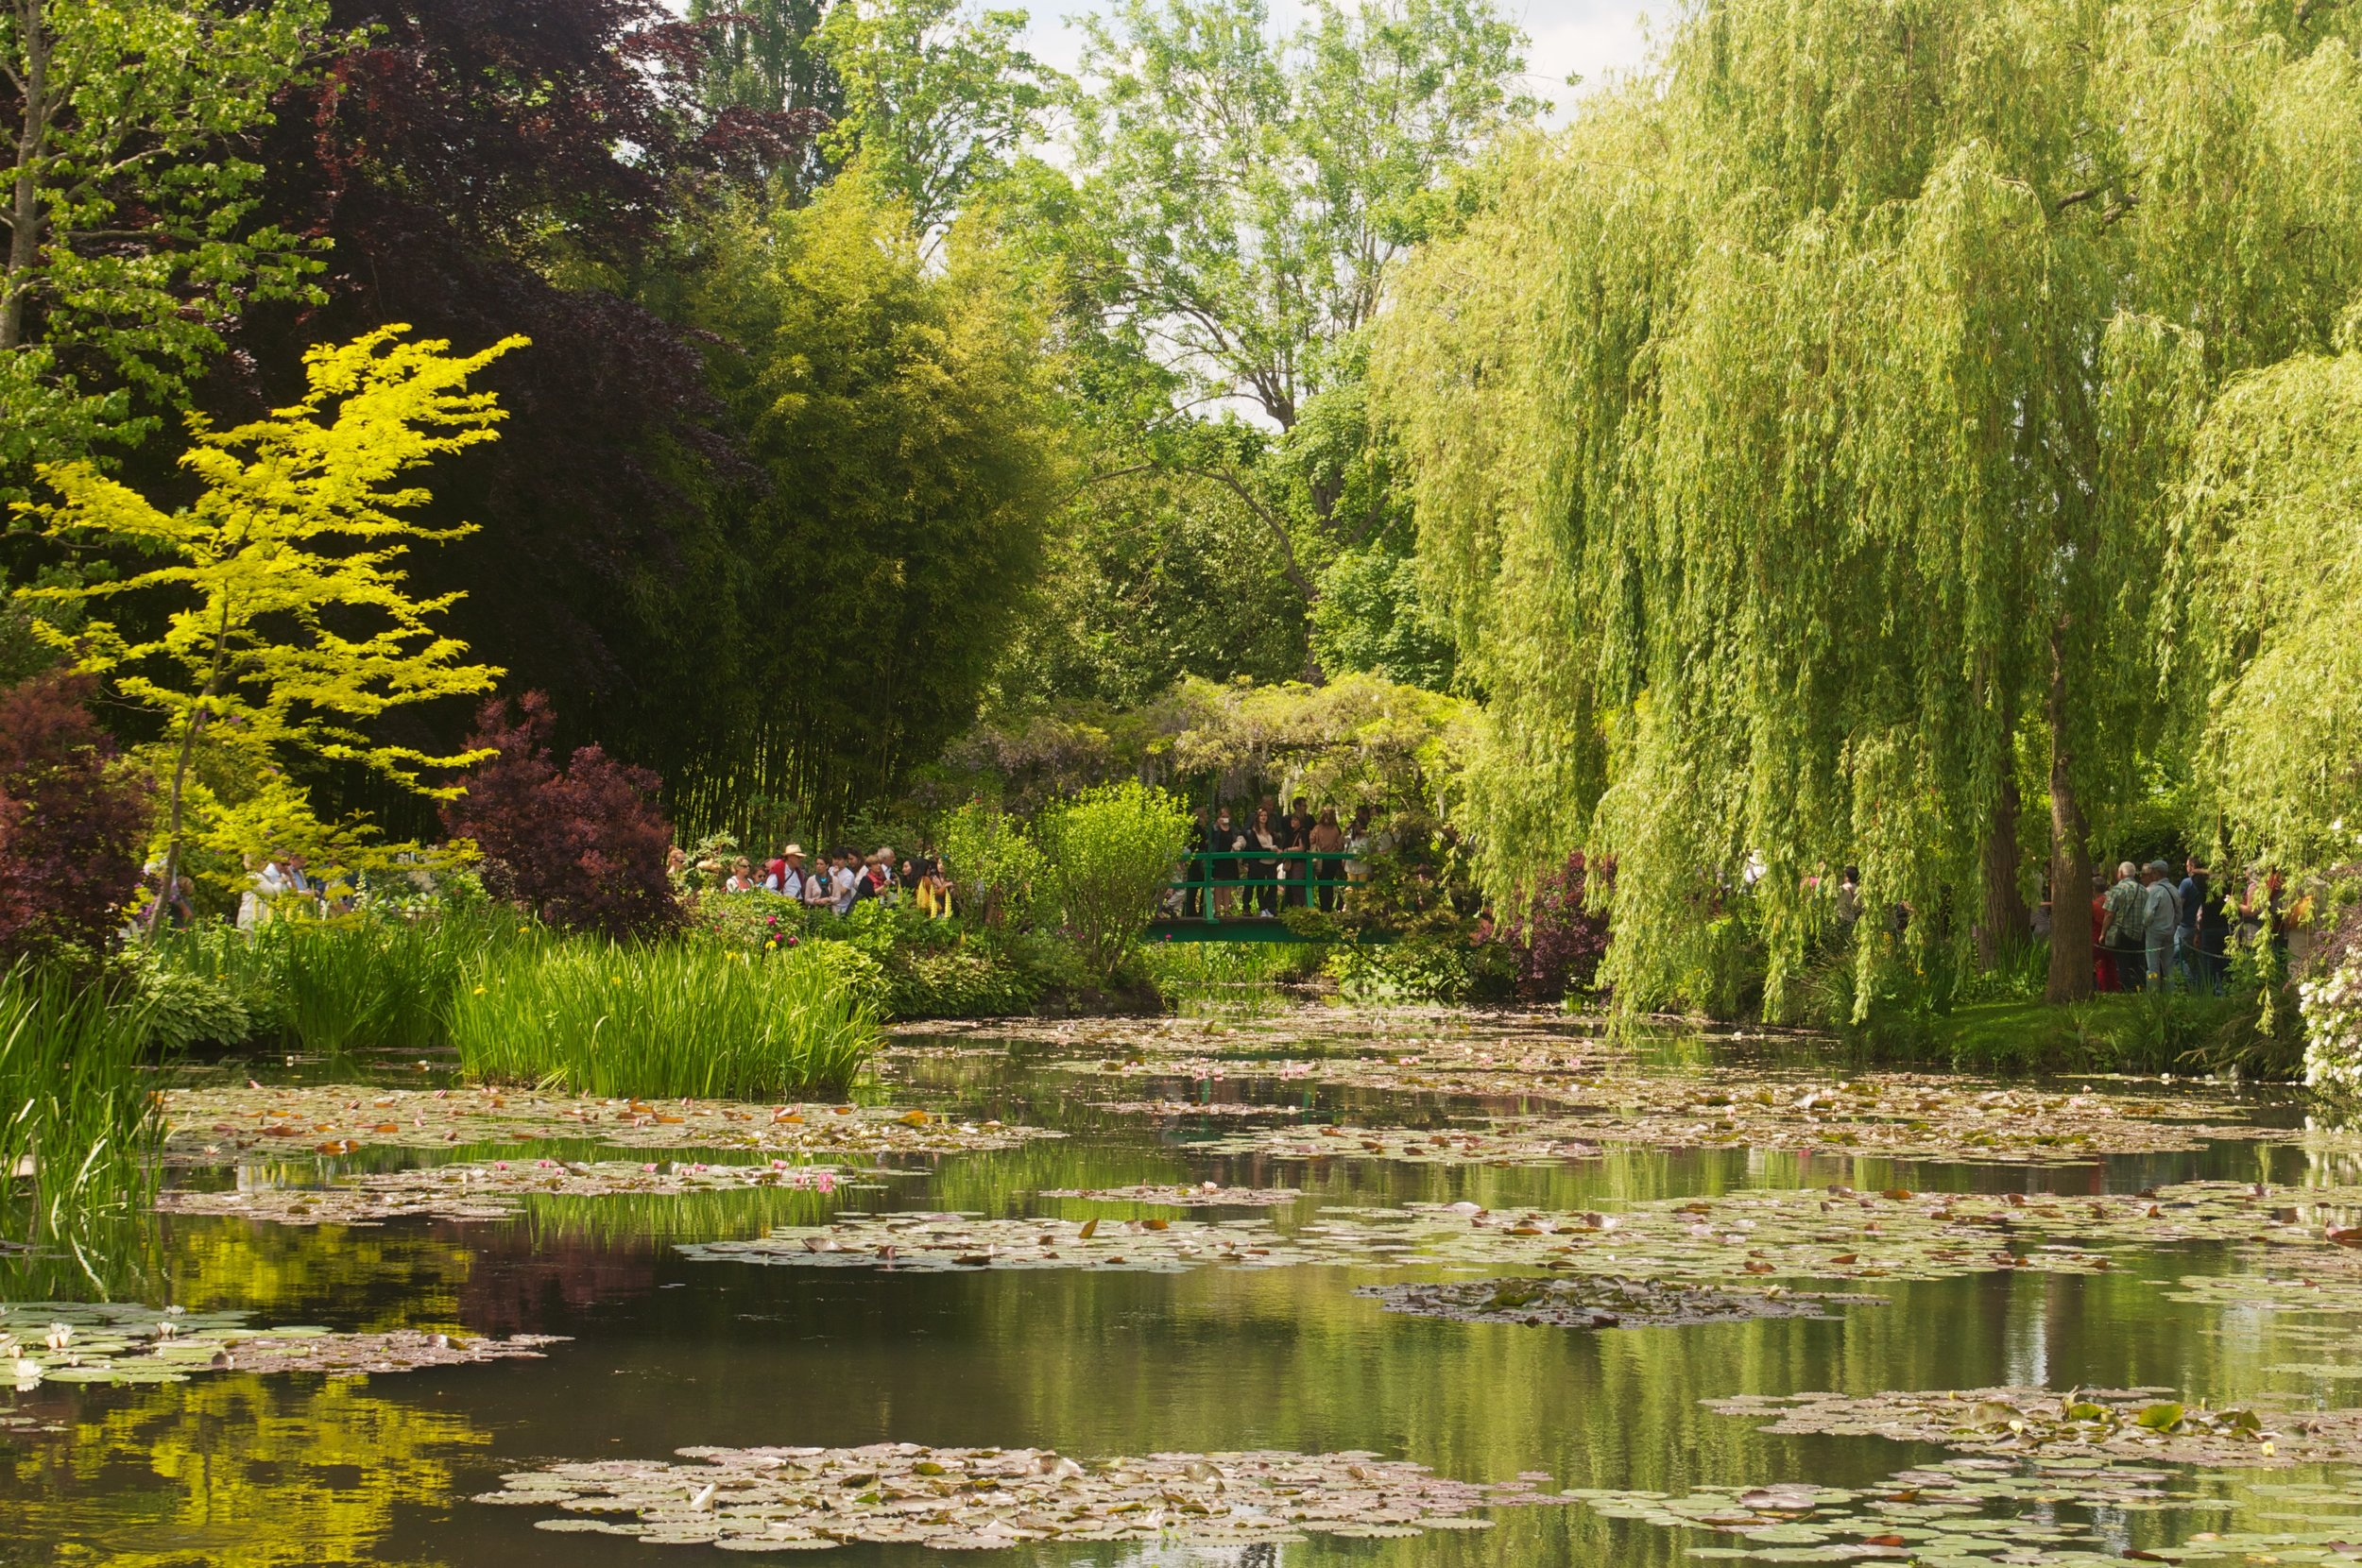 The Ultimate Northern France Itinerary - #giverny #monetgardens #france